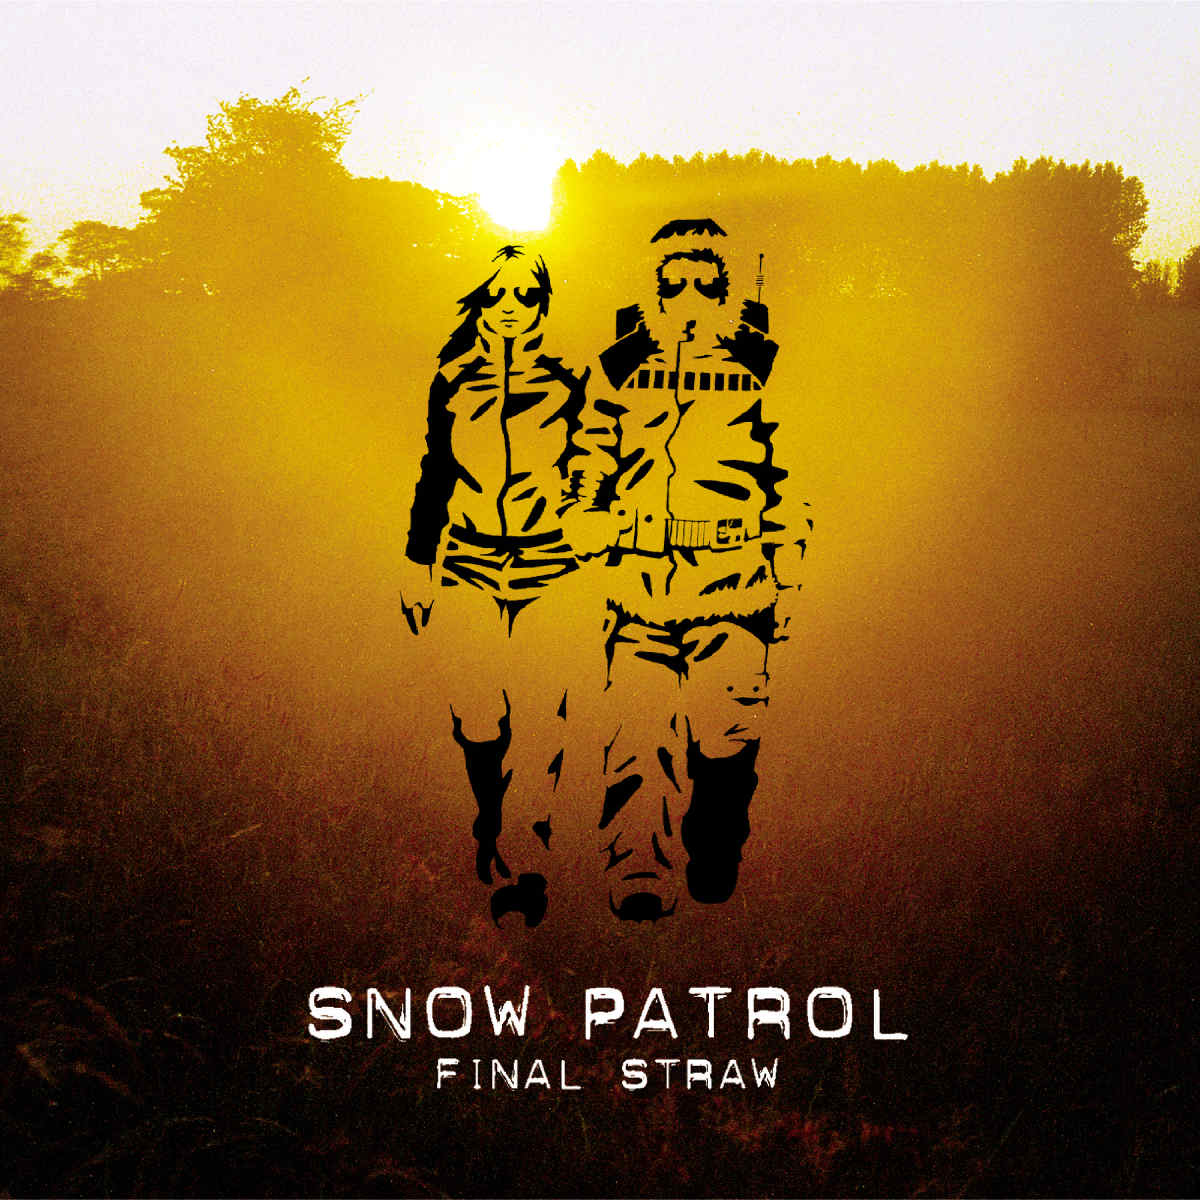 Watch Movies Online The President Snow Patrol Youtube